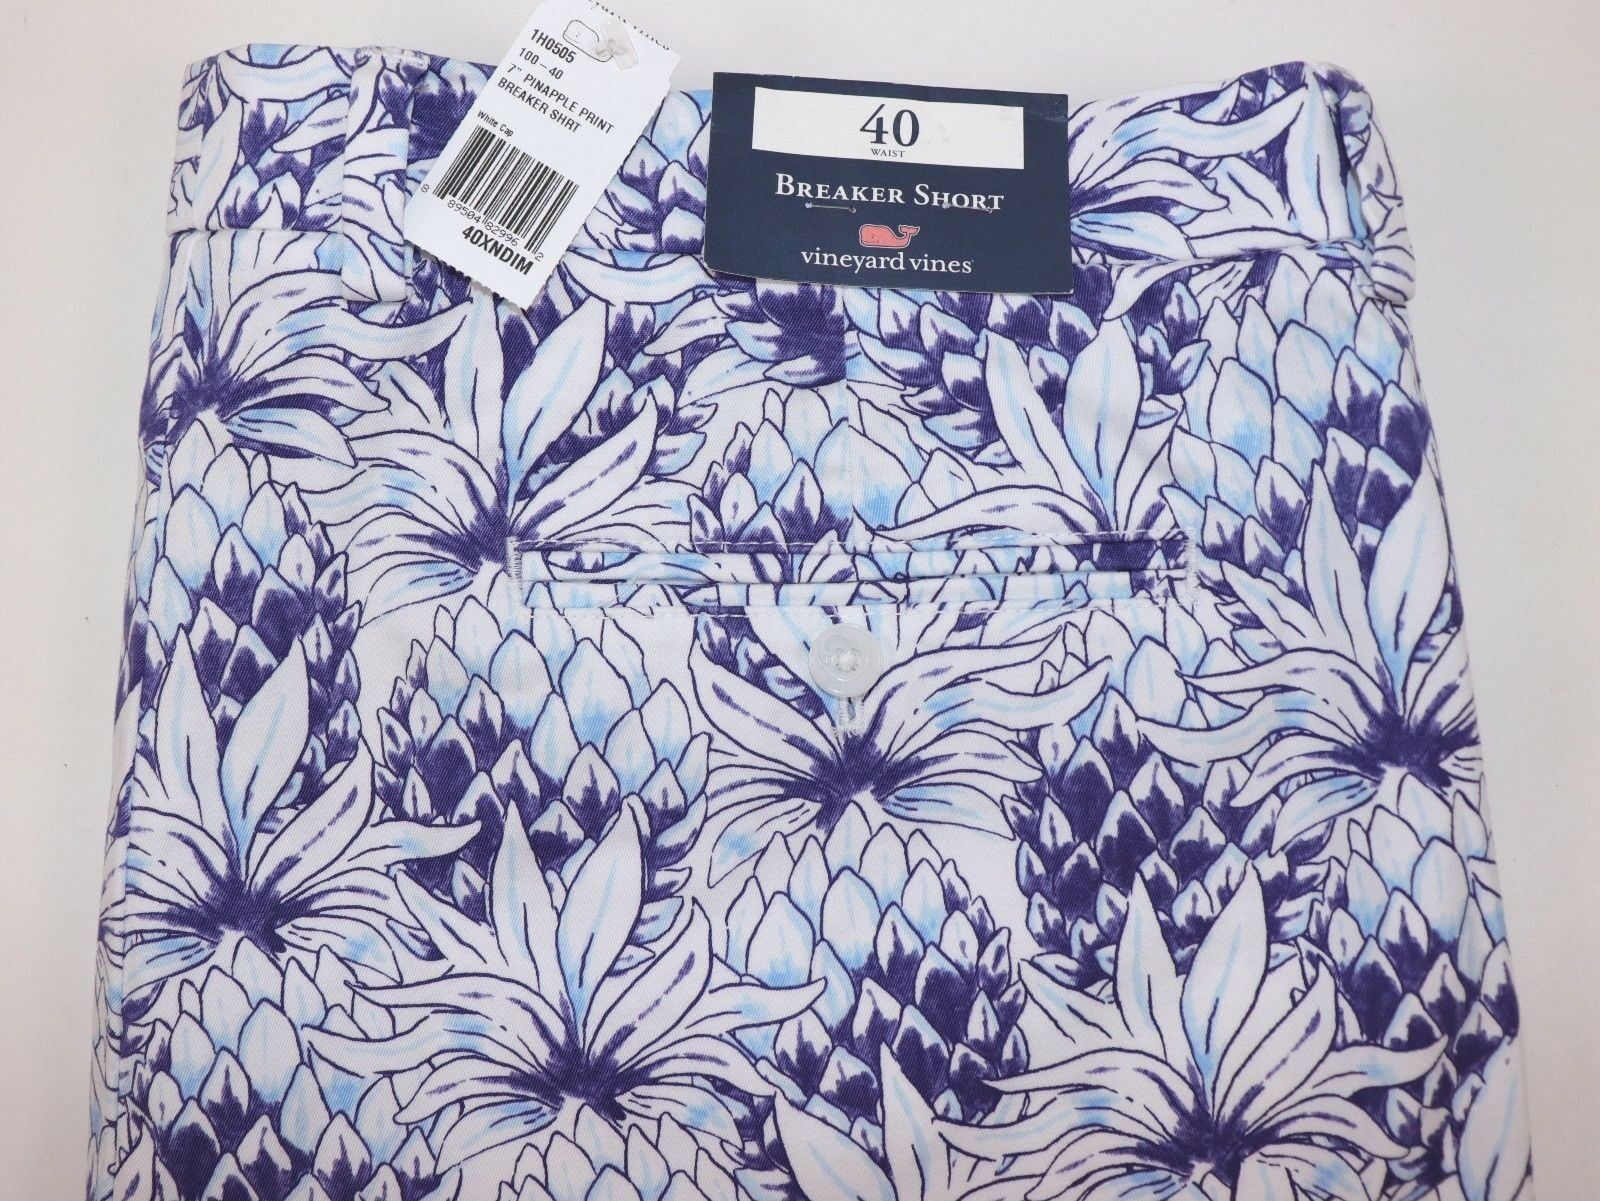 NWT VINEYARD VINES 40 Men's Flat Front Multi-color Pineapple Print BREAKER Short